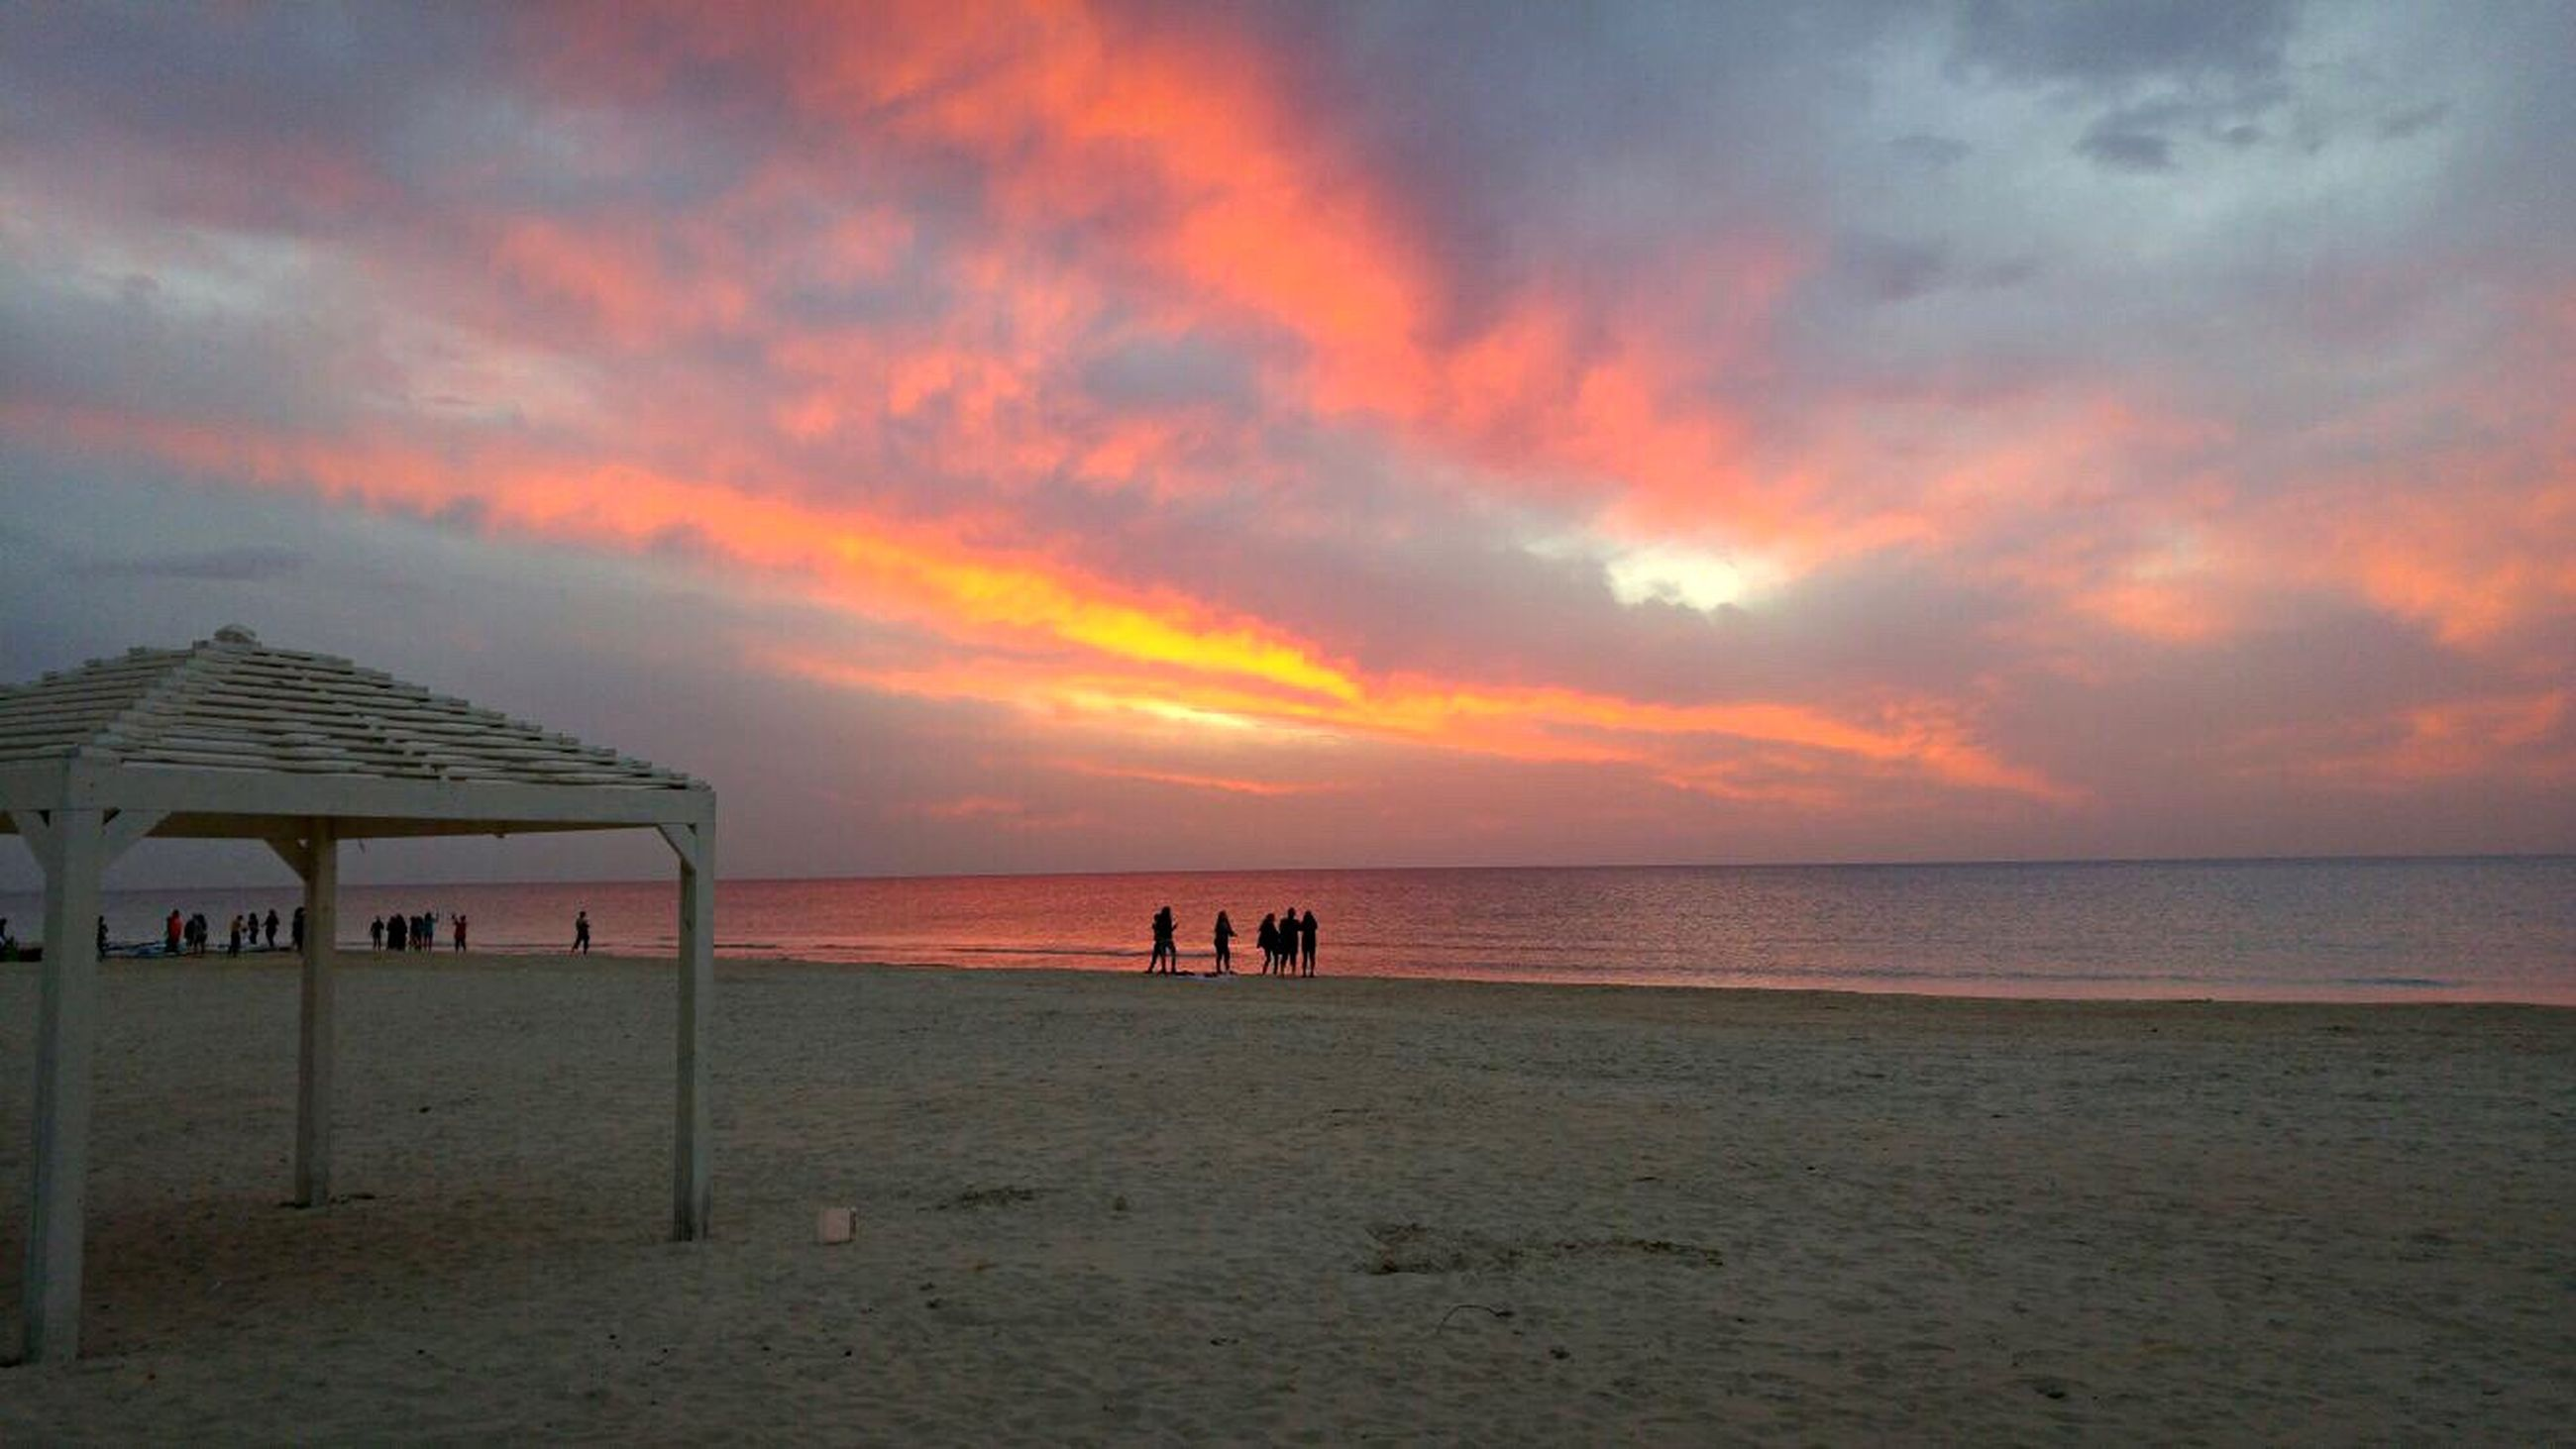 sea, horizon over water, beach, water, sunset, sky, scenics, beauty in nature, shore, tranquil scene, tranquility, cloud - sky, orange color, sand, idyllic, nature, vacations, incidental people, cloud, outdoors